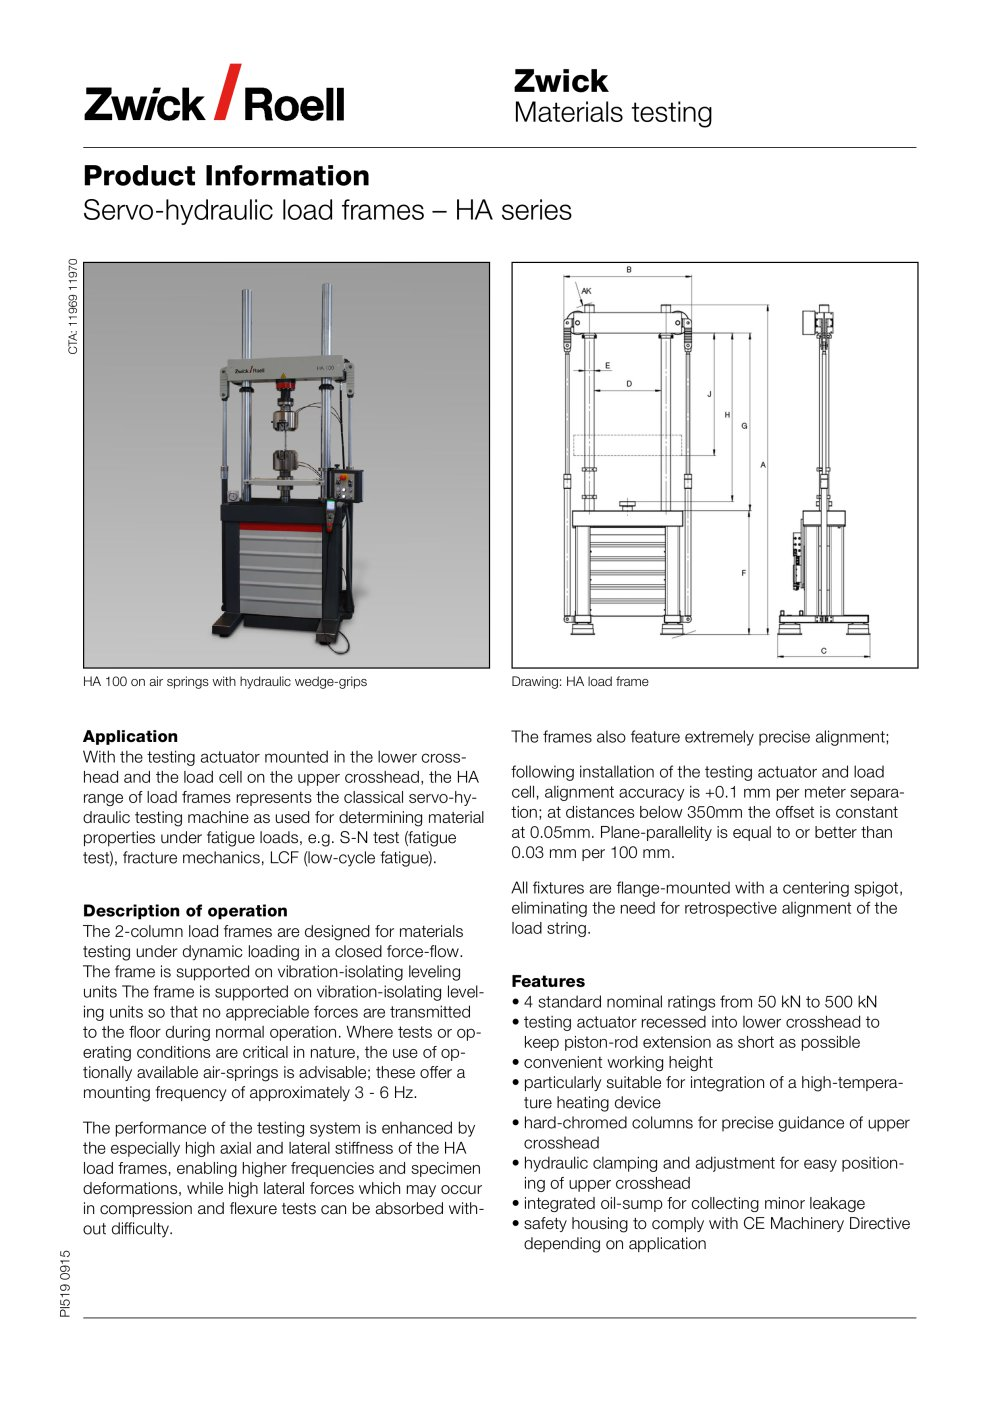 Servo-hydraulic load frames – HA series - ZWICK GMBH & CO. KG - PDF ...